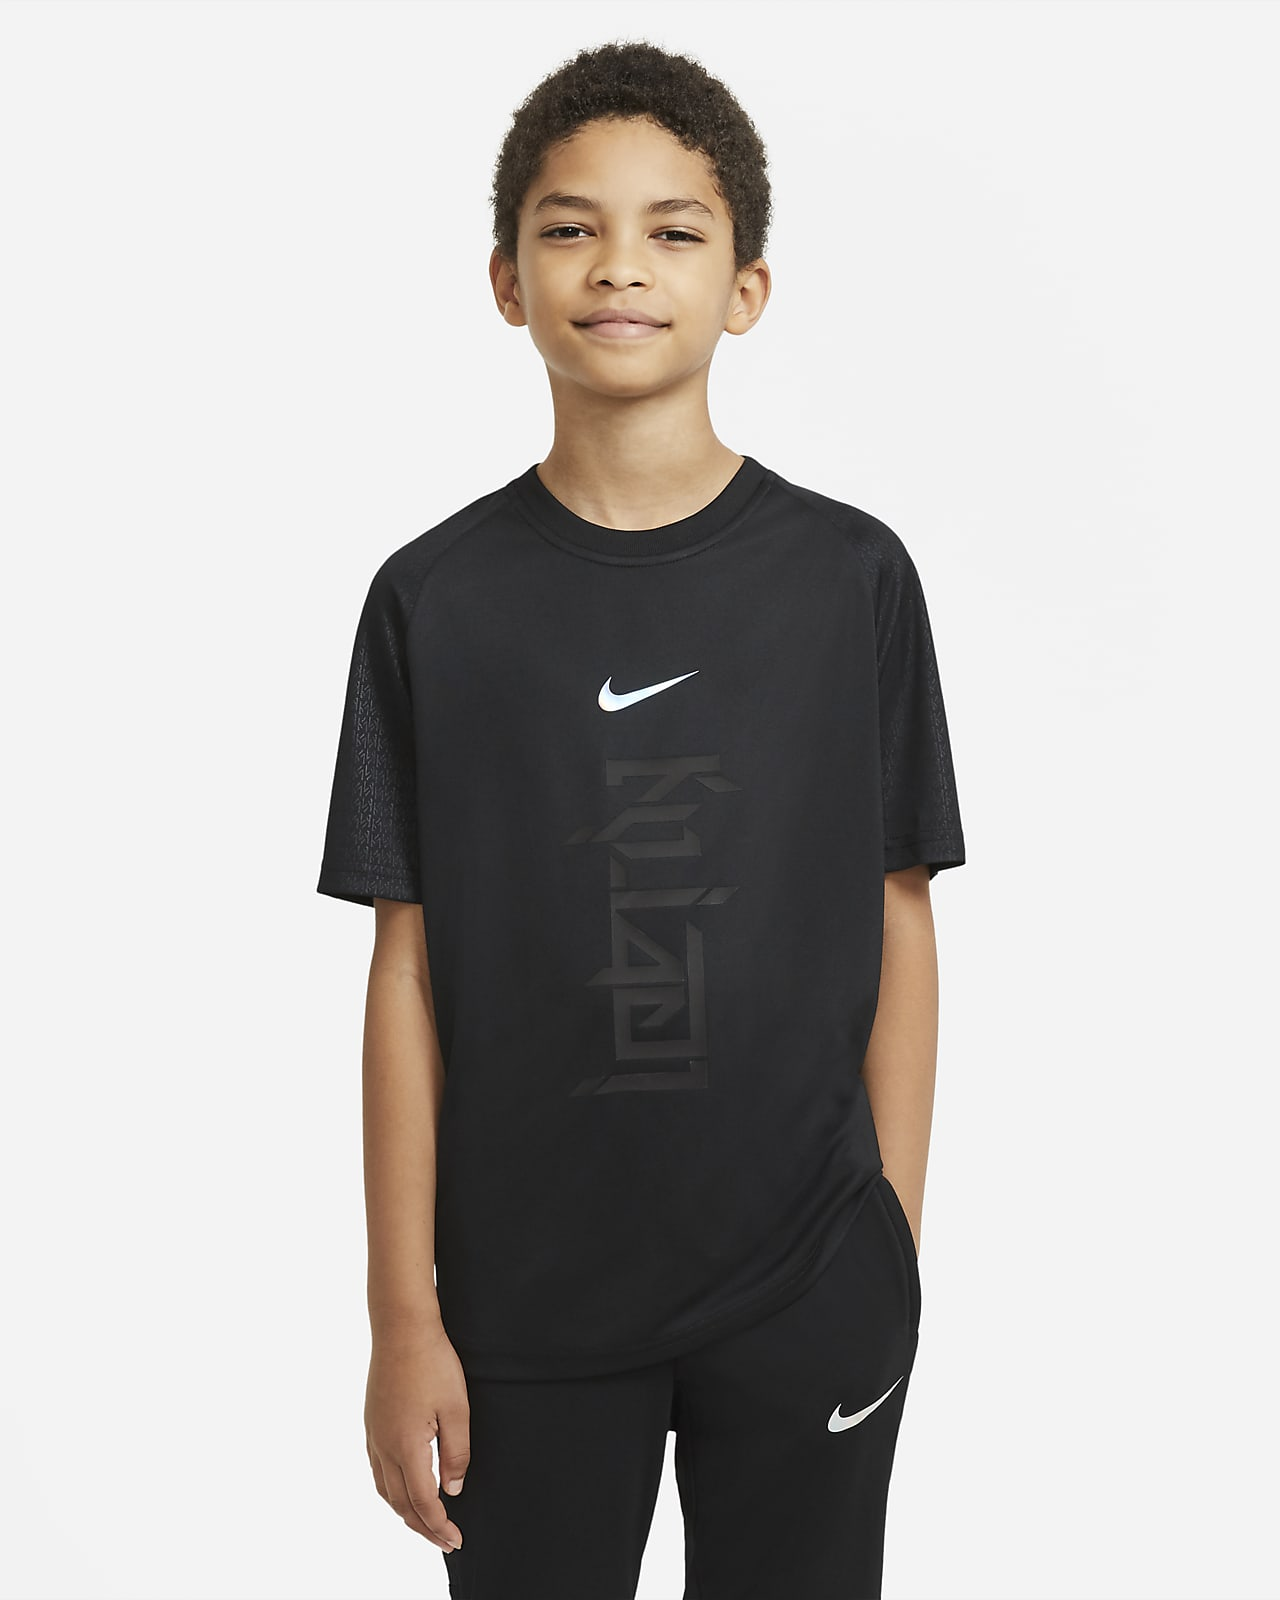 Nike Dri-FIT Kylian Mbappé Big Kids' Short-Sleeve Soccer Top